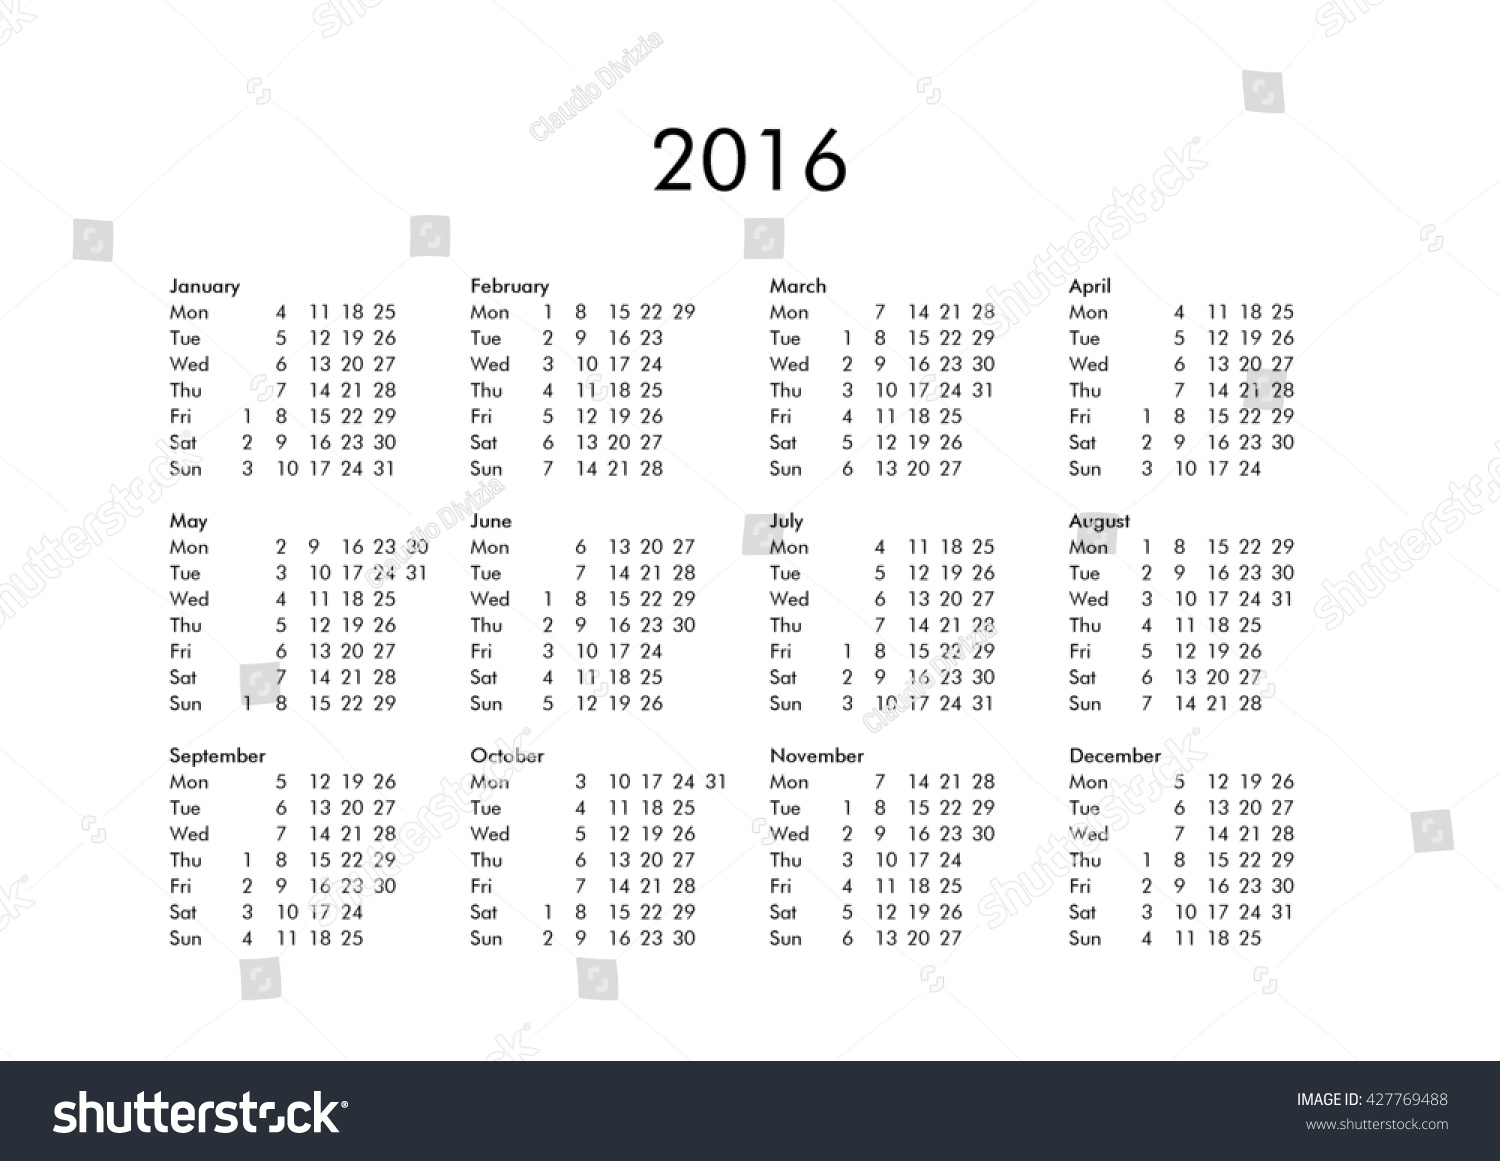 Calendar All Months : Calendar year all months stock illustration